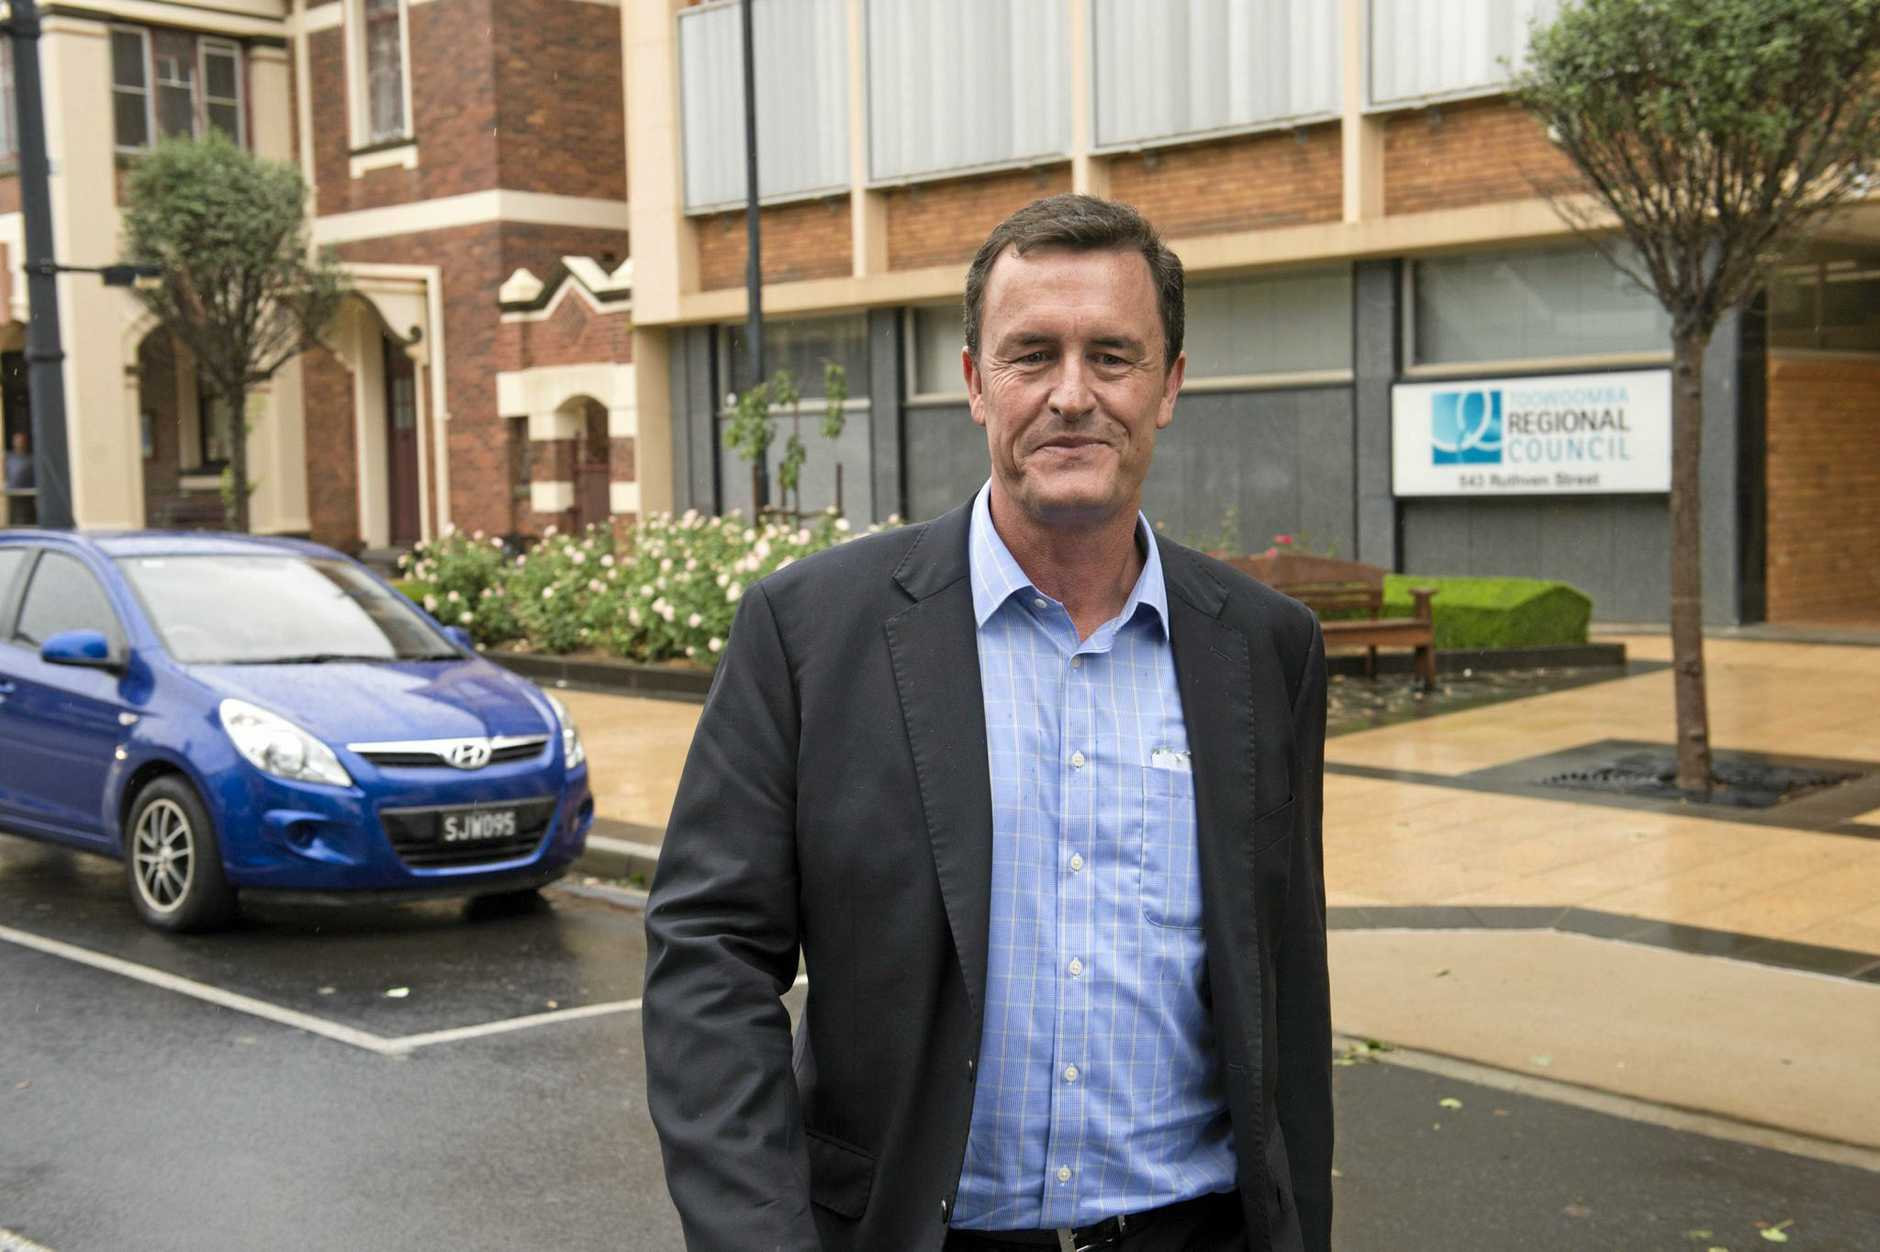 LNP president Gary Spence told the LNP State Convention politics has changed in the past 12 months.